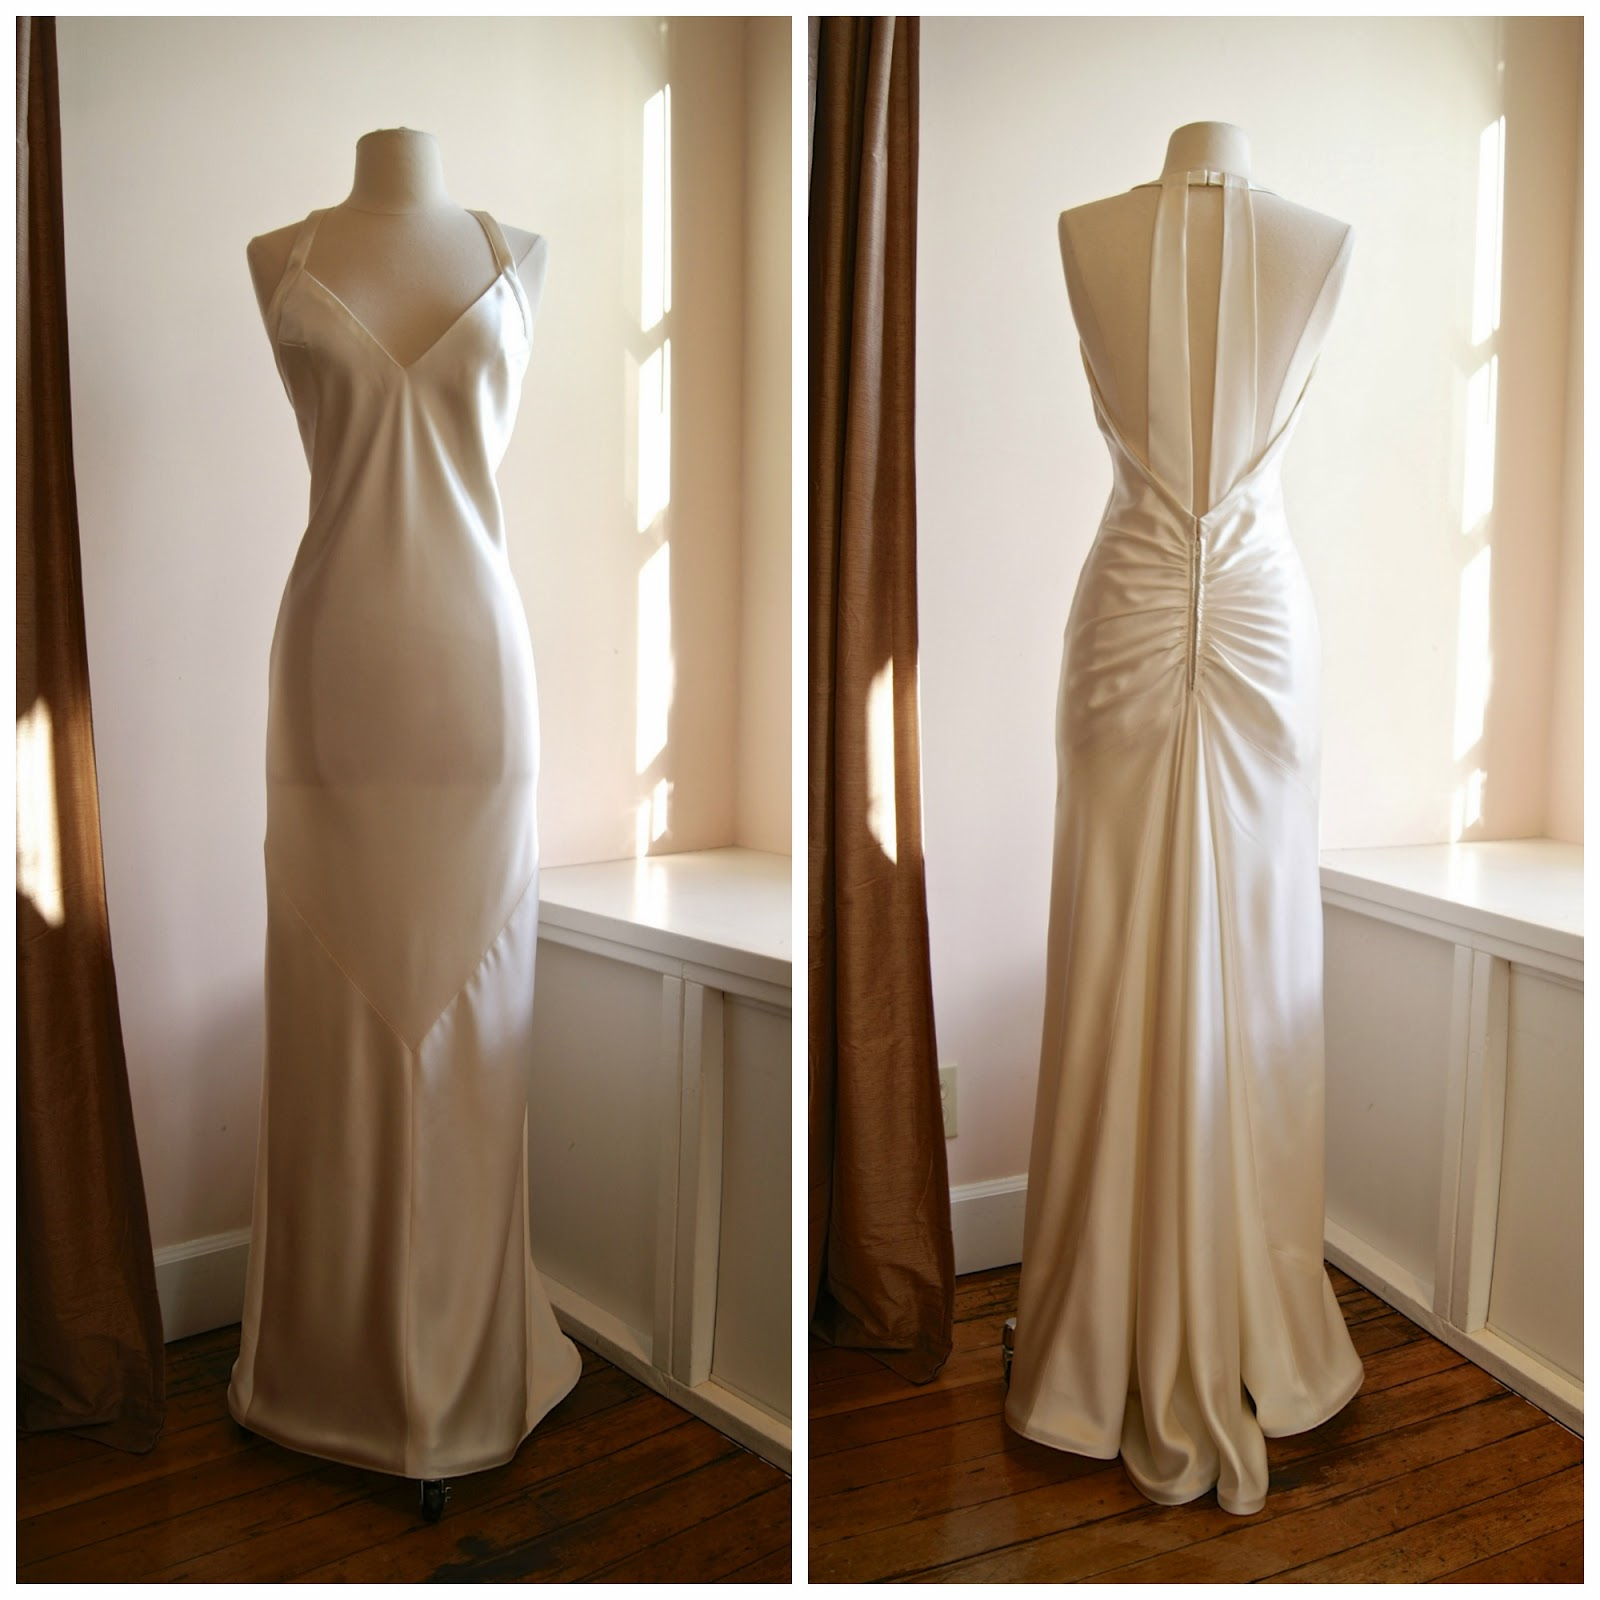 Xtabay vintage clothing boutique portland oregon for Wedding dress 30s style